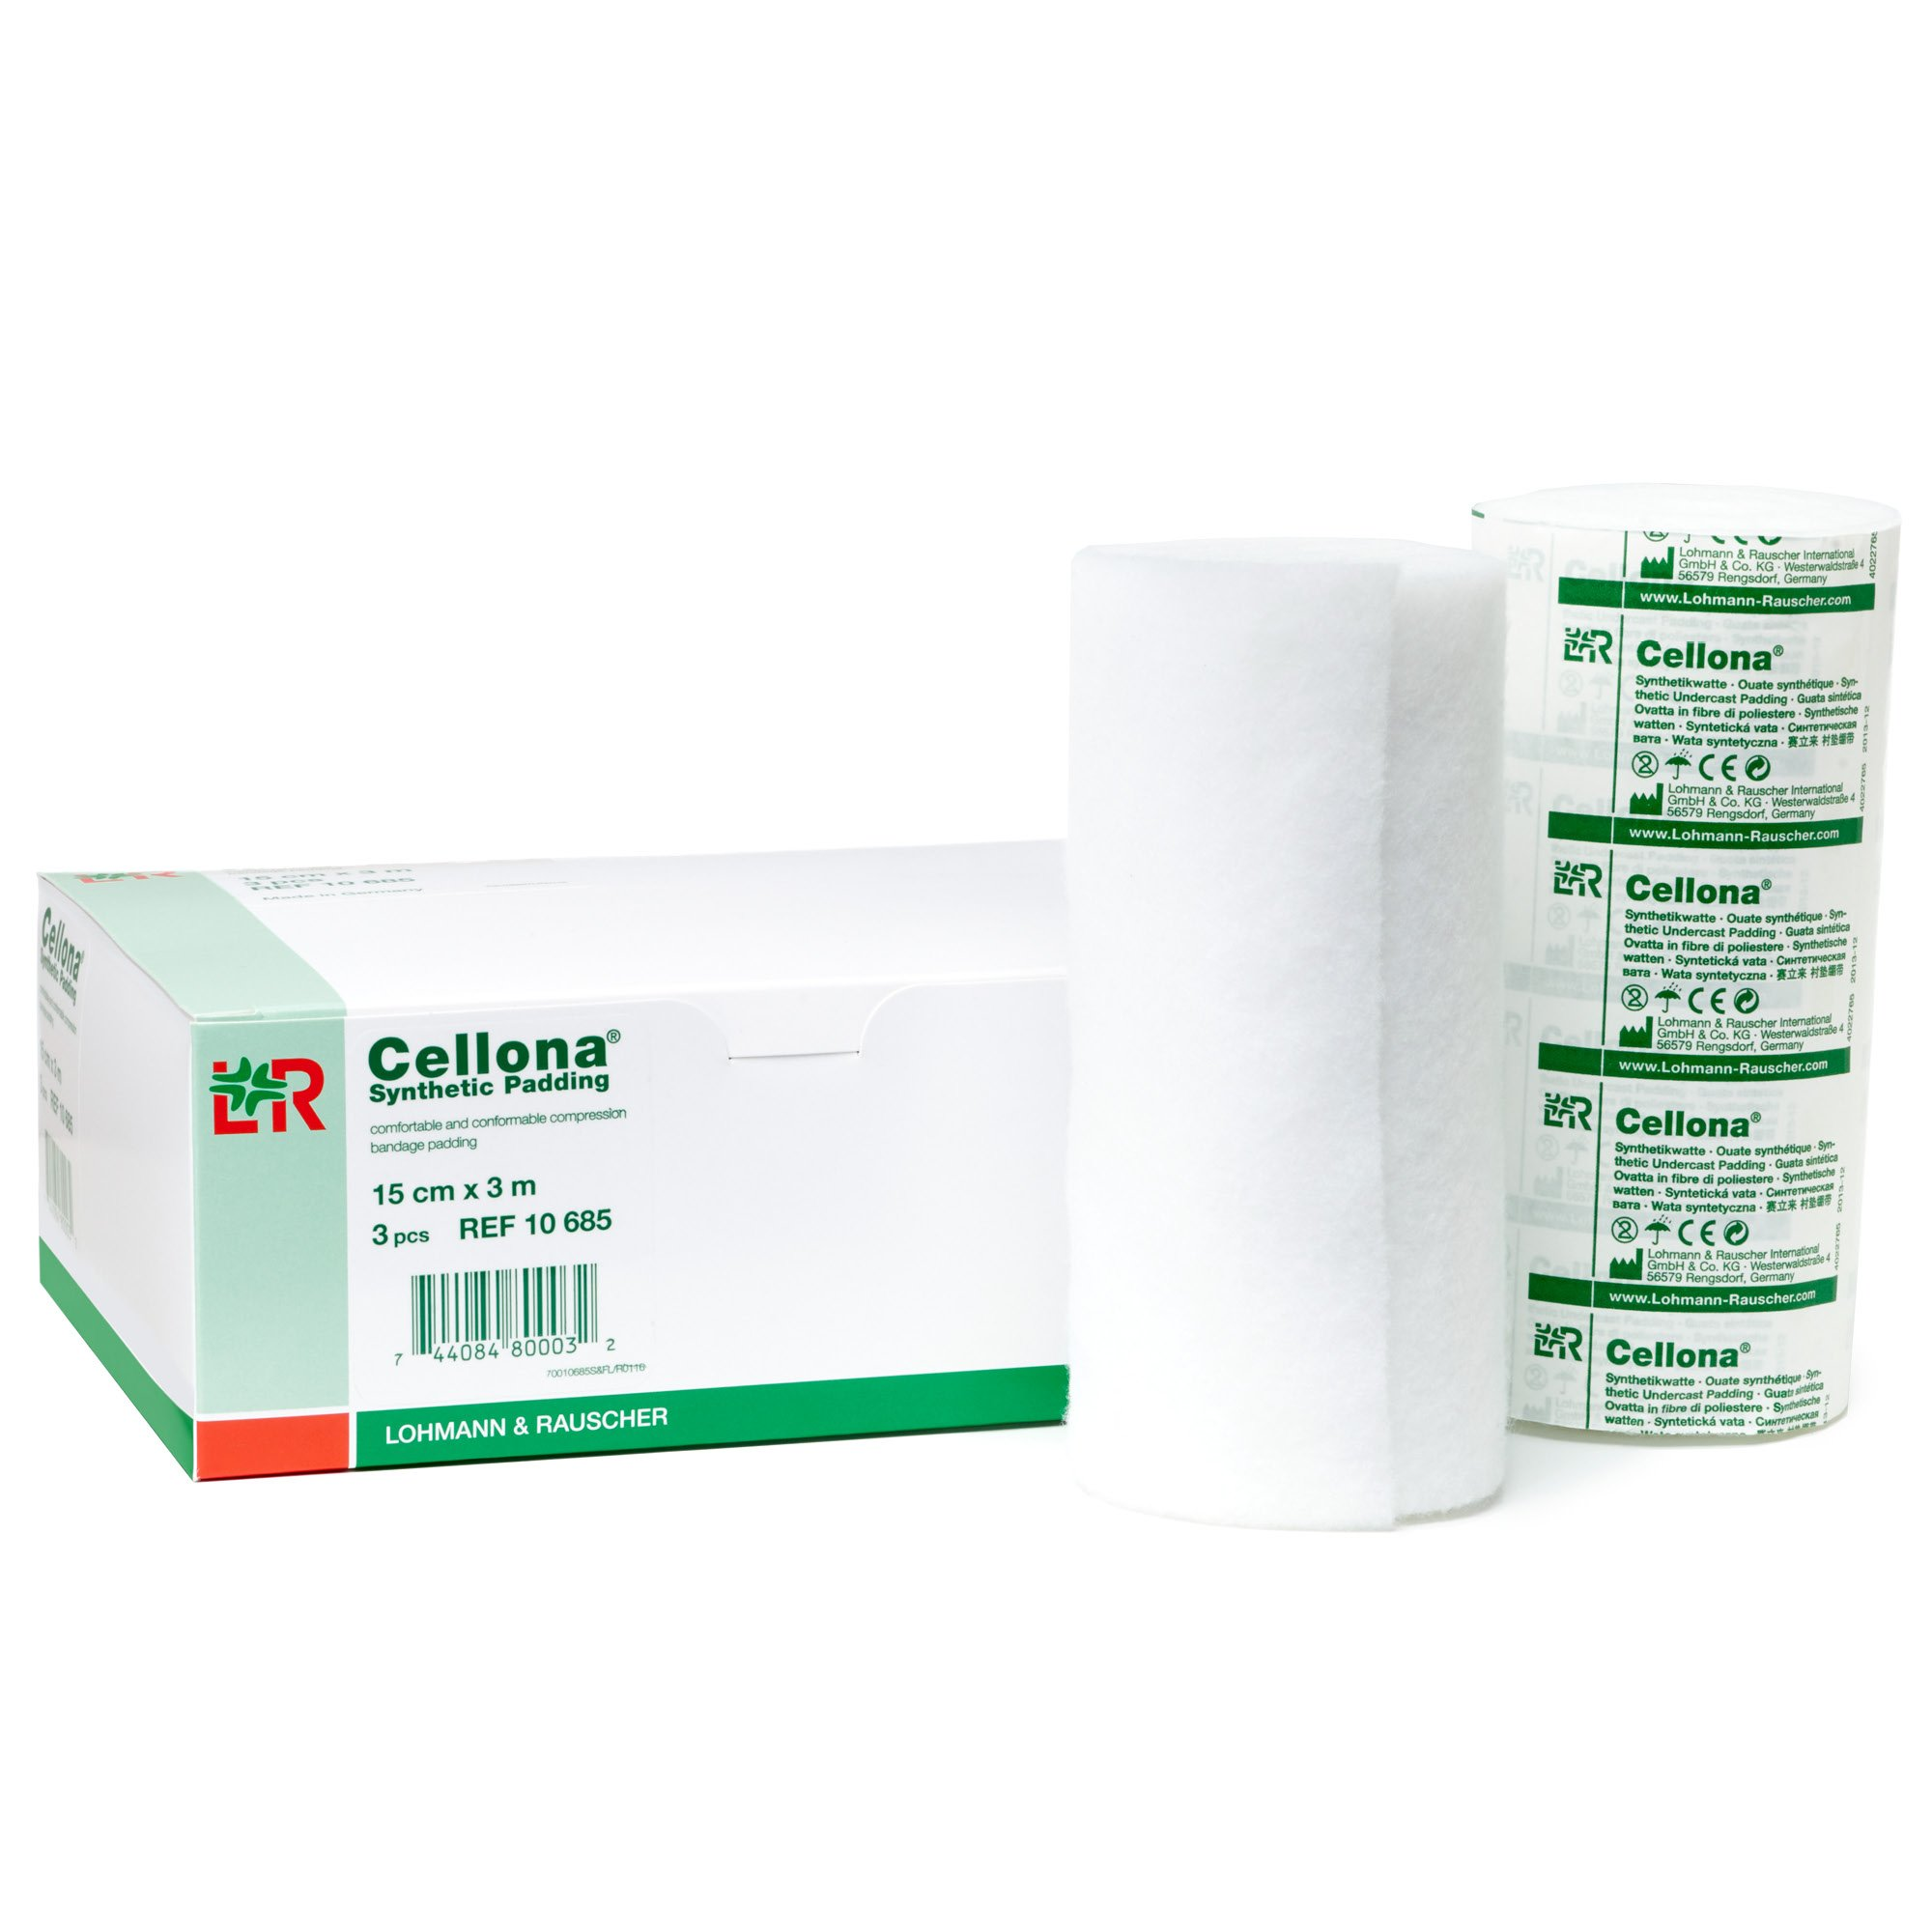 Lohmann & Rauscher Cellona Synthetic Padding, Latex Free Cast Padding for Compression Bandages & Casting, & 100% Polyester Self-Adhering Wrap, 30 Rolls, 5.9'' x 4 yards (15 cm x 3 m) by Lohmann&Rauscher